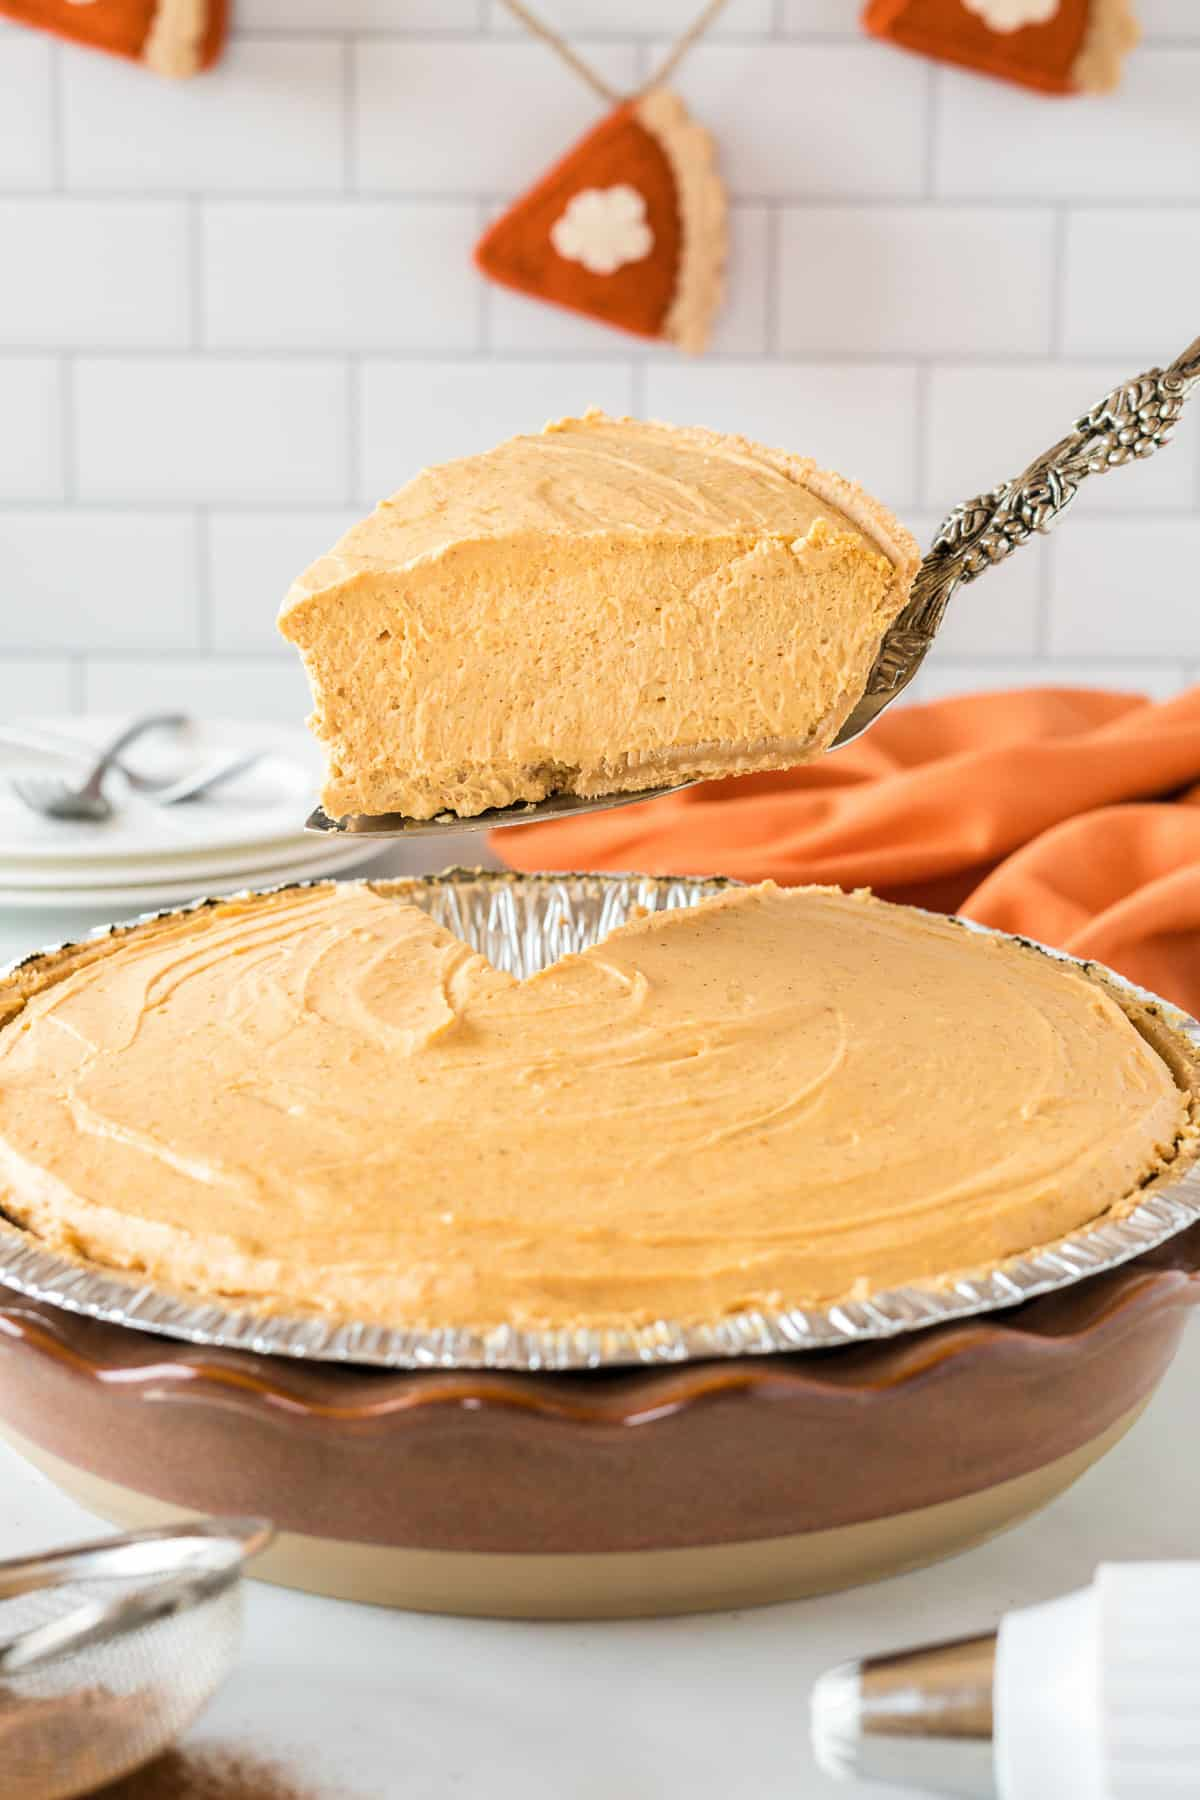 taking a piece of pumpkin pie from the pie dish